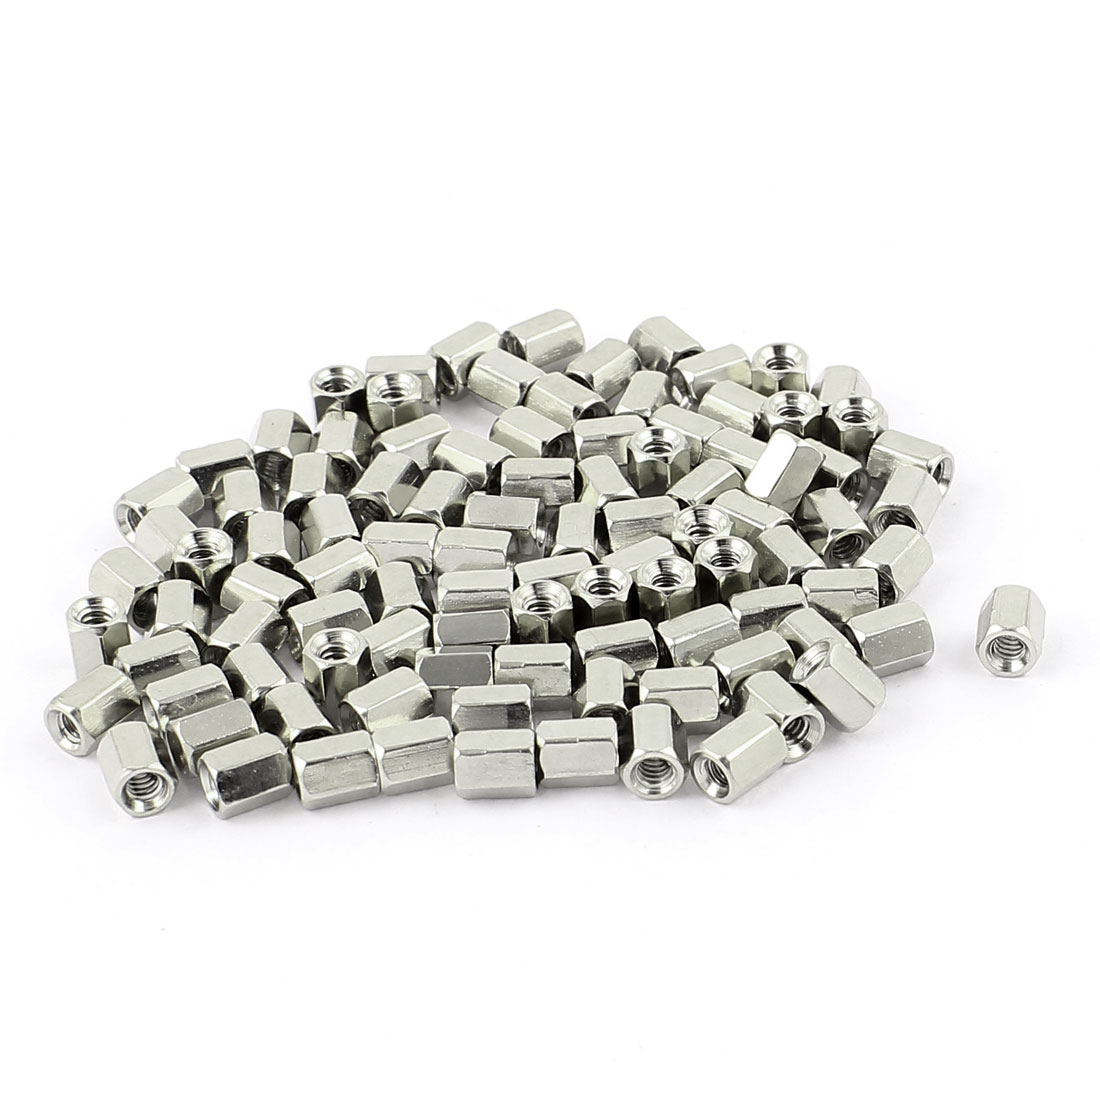 UXCELL 100Pcs #4-40 6Mm Long Female Thread Brass Hex Nut Spacer Standoff Pillar Nickle Plated Silver Tone For RS232, VGA, DB-9P